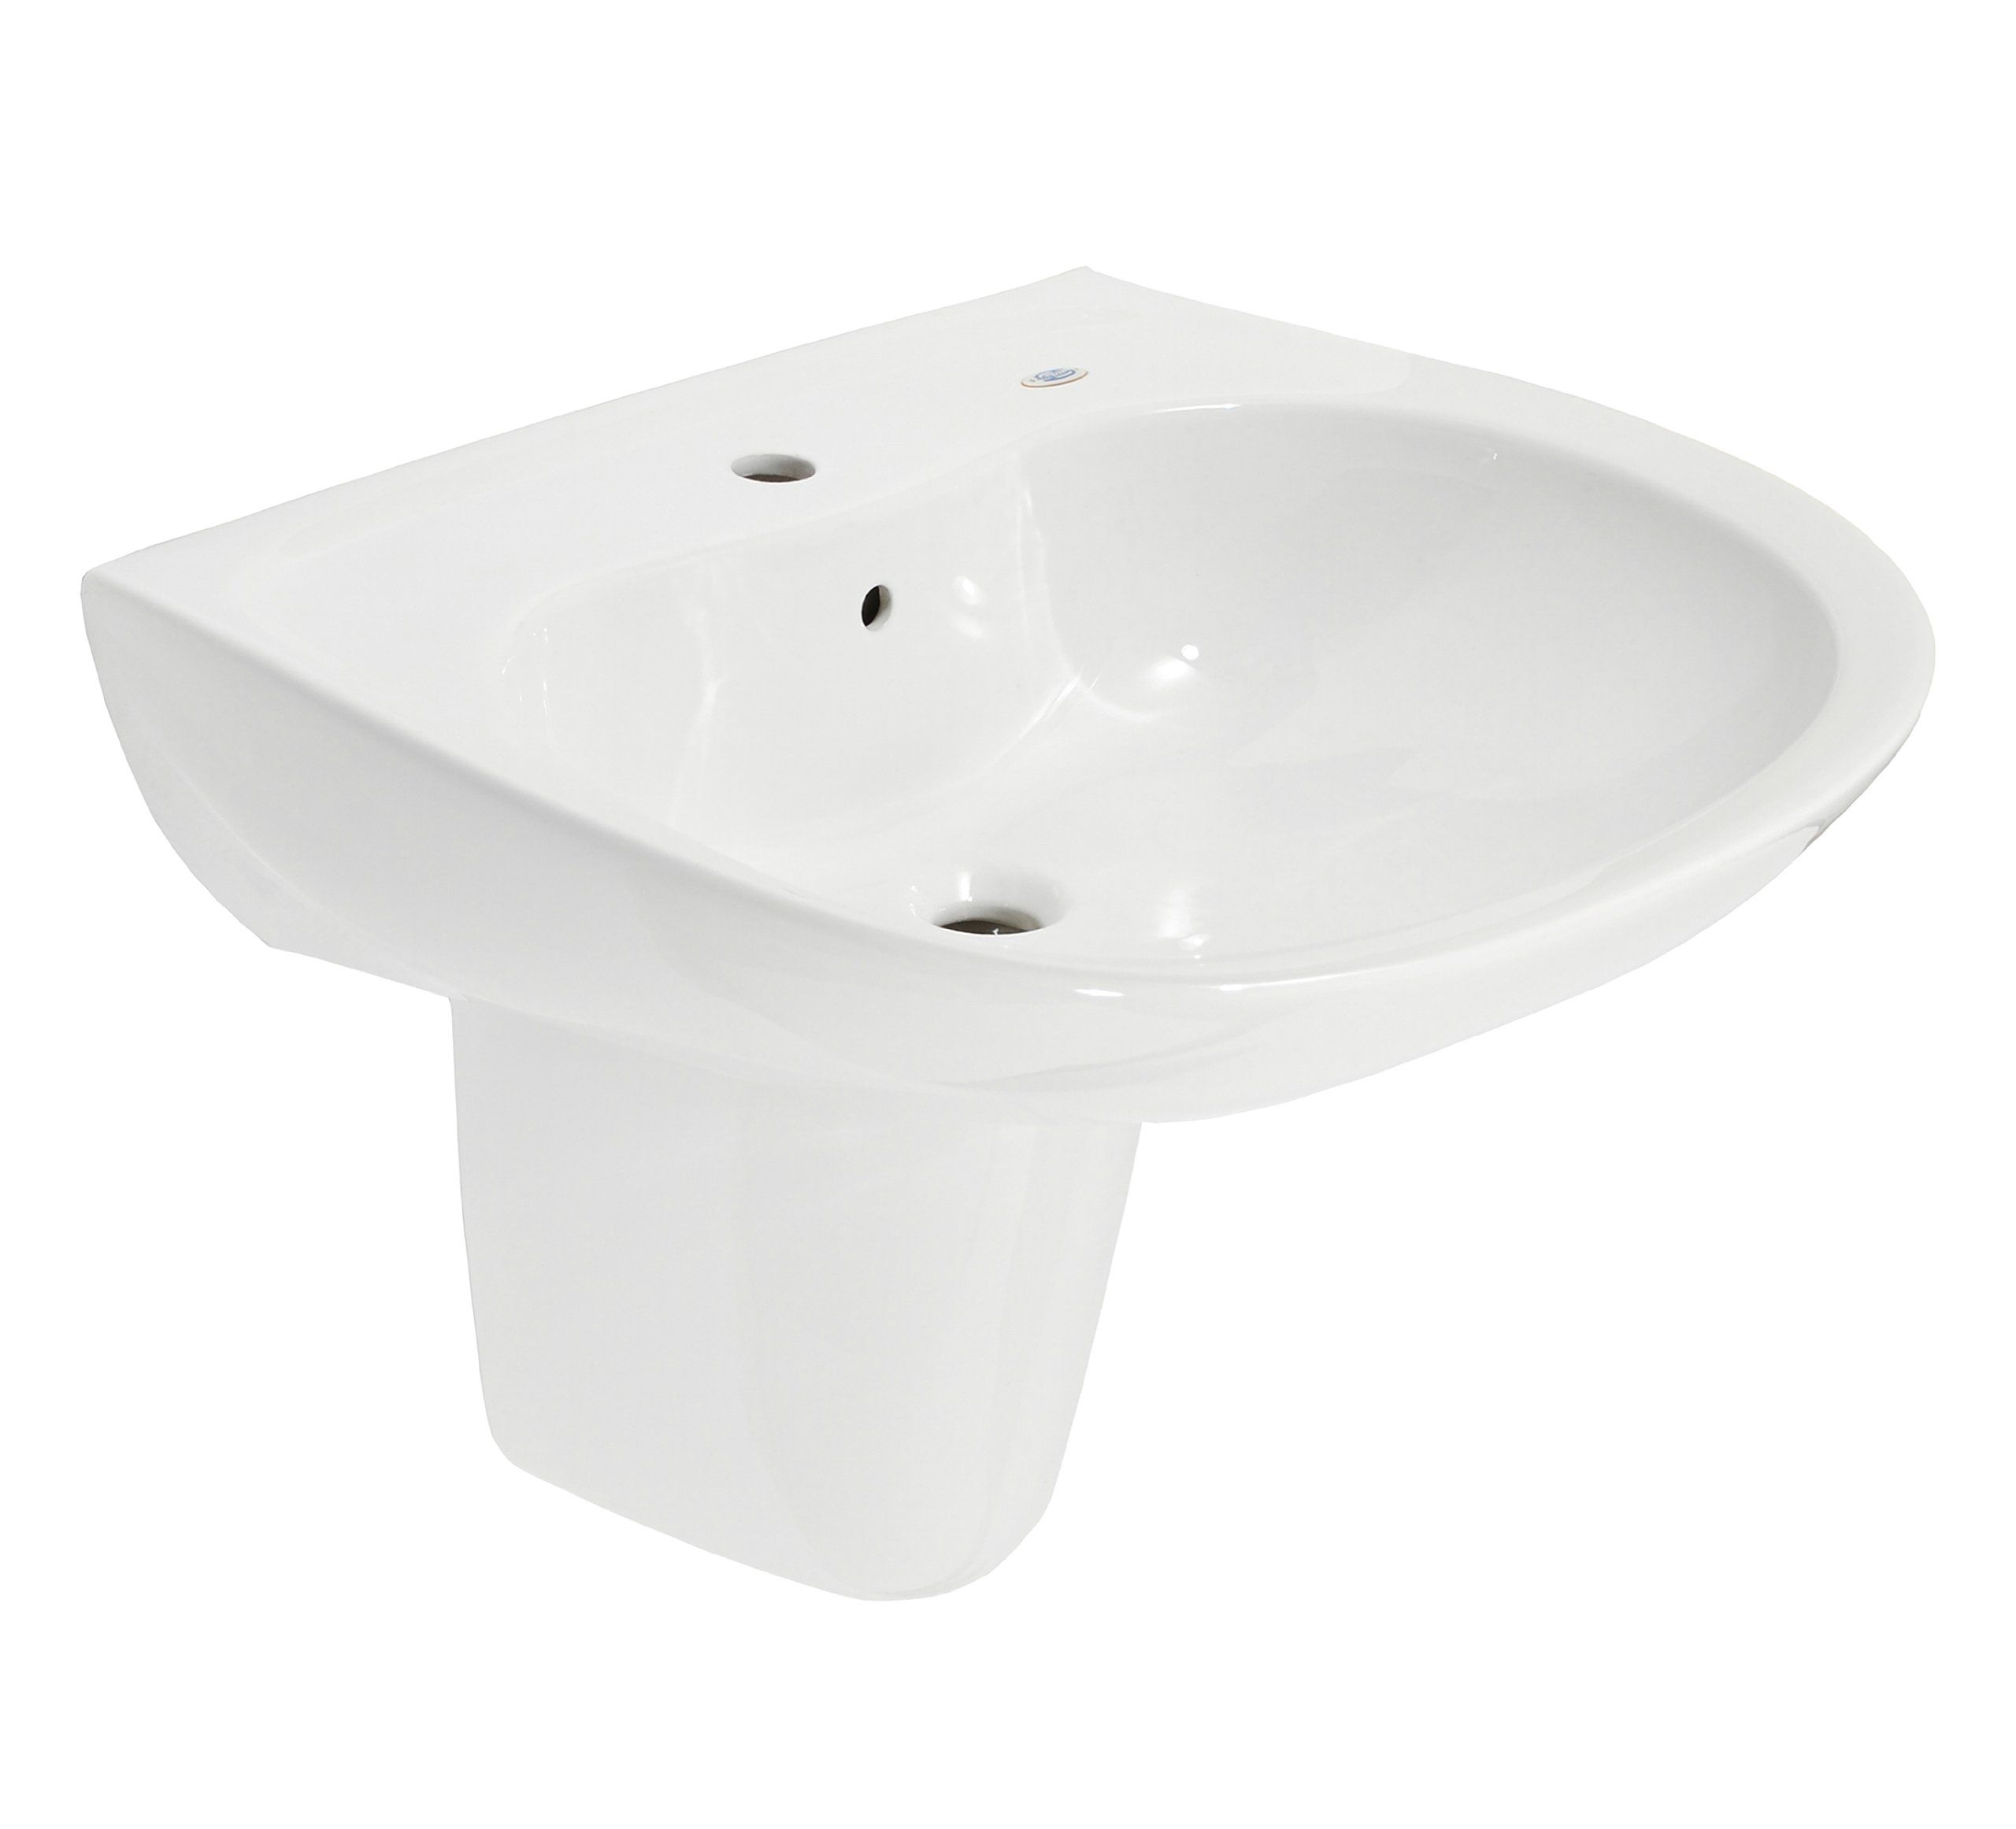 164 Toto Lht242g 01 Prominence Lavatory And Shroud With Single Hole Cotton White Wall Mounted Sinks Amazon Com Bathroom Remodel Wall Mounted Sink Sink Pedestal Sink